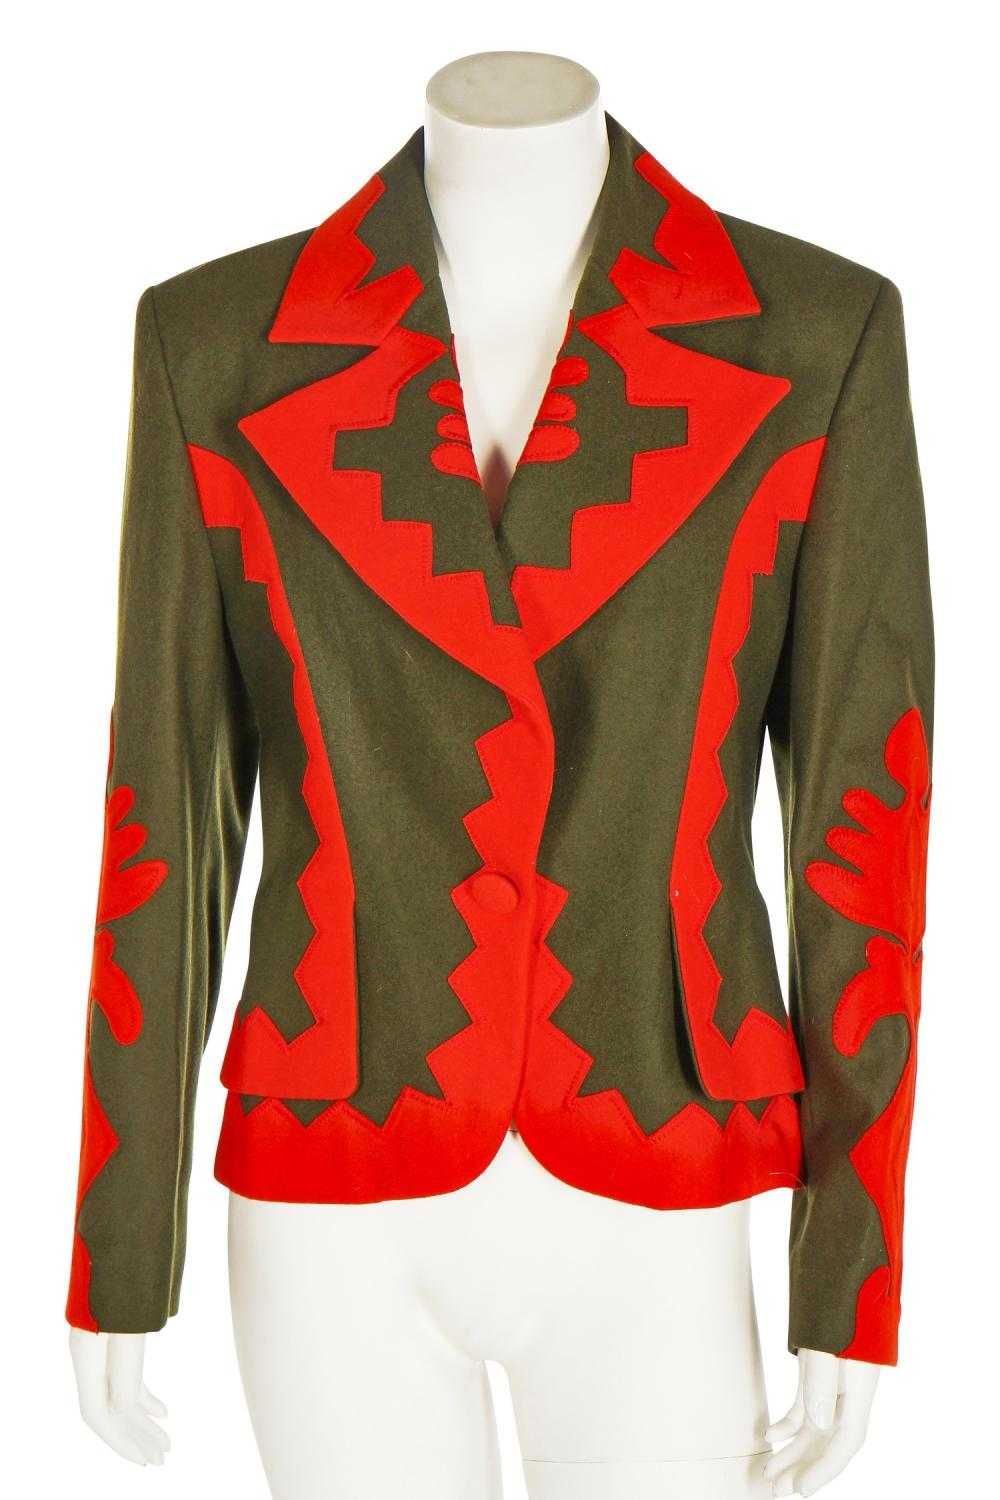 A Christian Lacroix green wool jacket with orange appliquéd cut-outs, 1990s-early 2000s